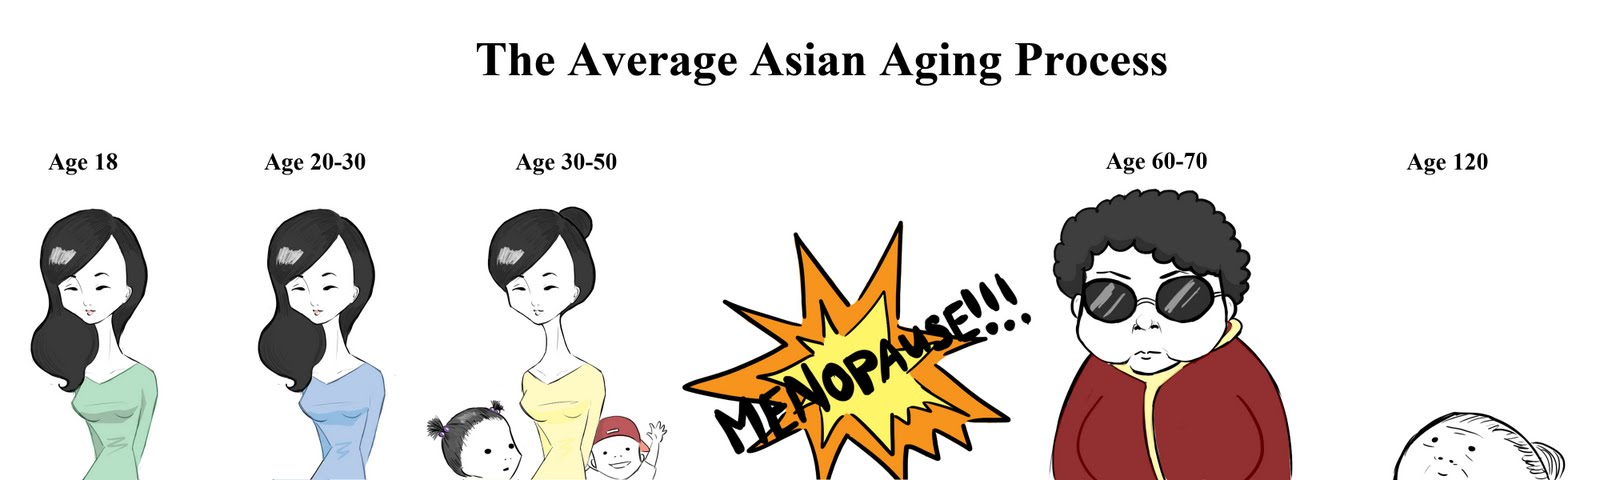 Asian Age Progression